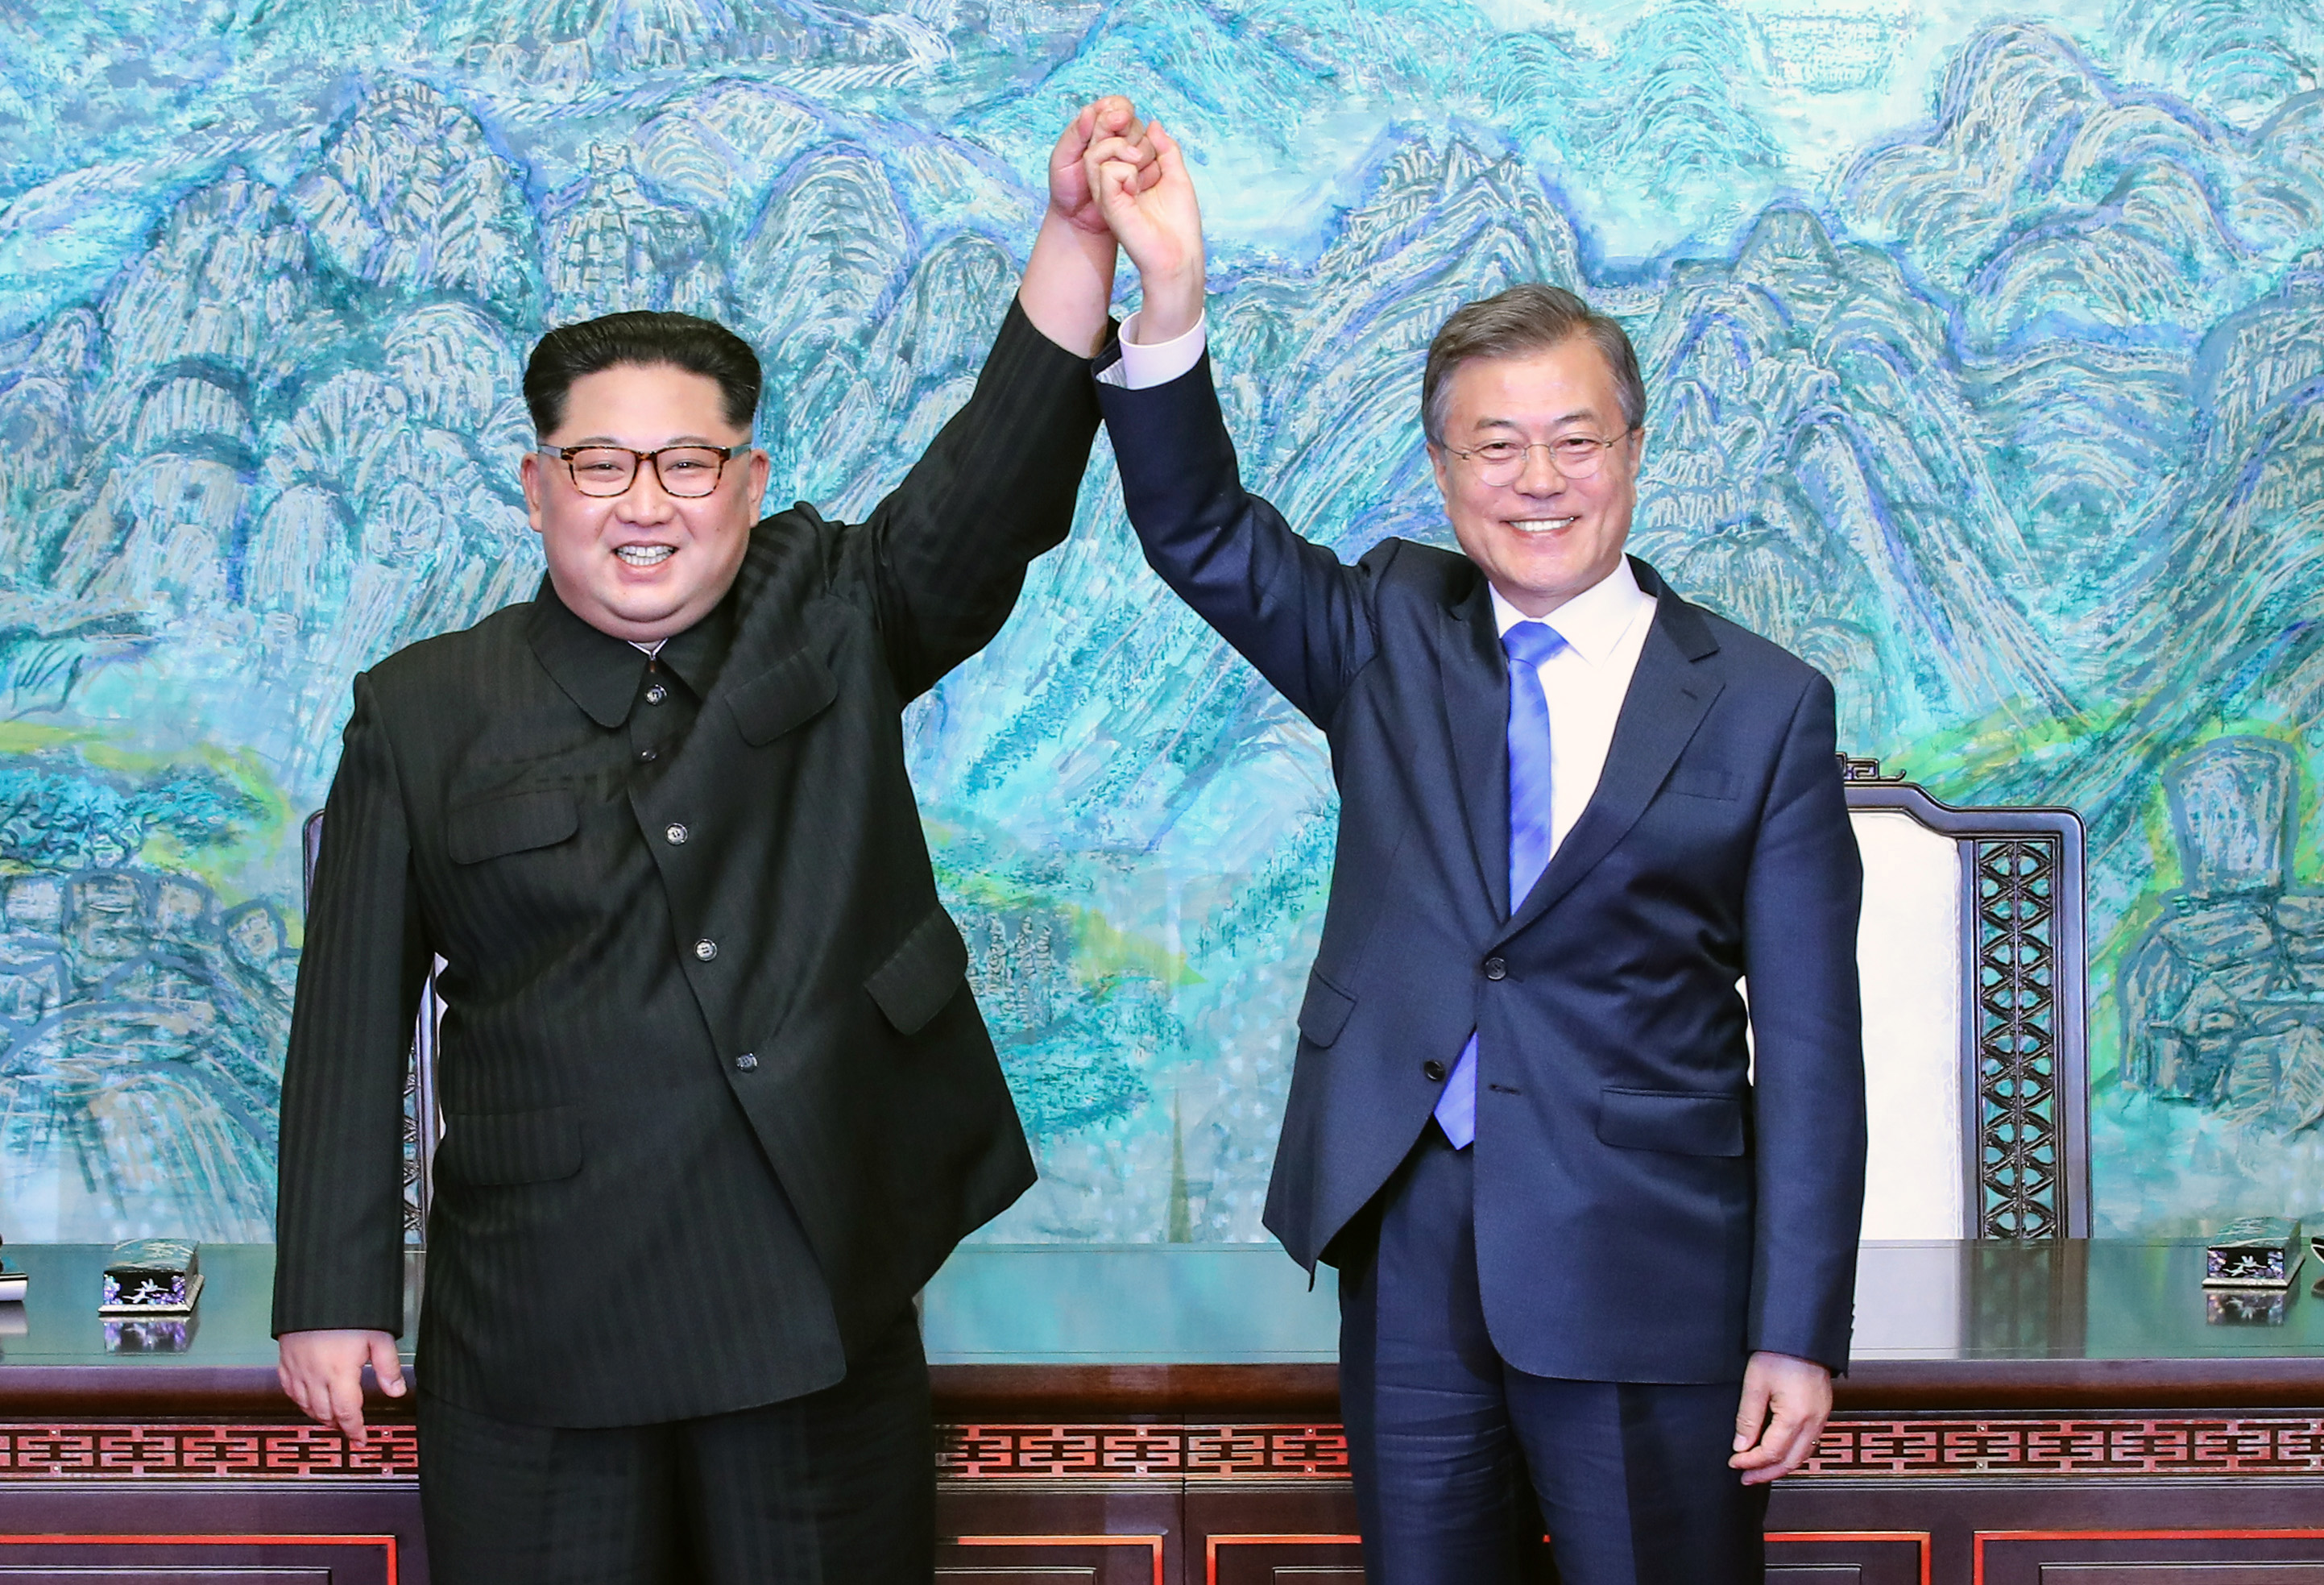 North Korean leader Kim Jong Un (L) and South Korean President Moon Jae-in (R) pose for photographs after signing the Panmunjom Declaration for Peace, Prosperity and Unification of the Korean Peninsula during the Inter-Korean Summit on April 27, 2018.